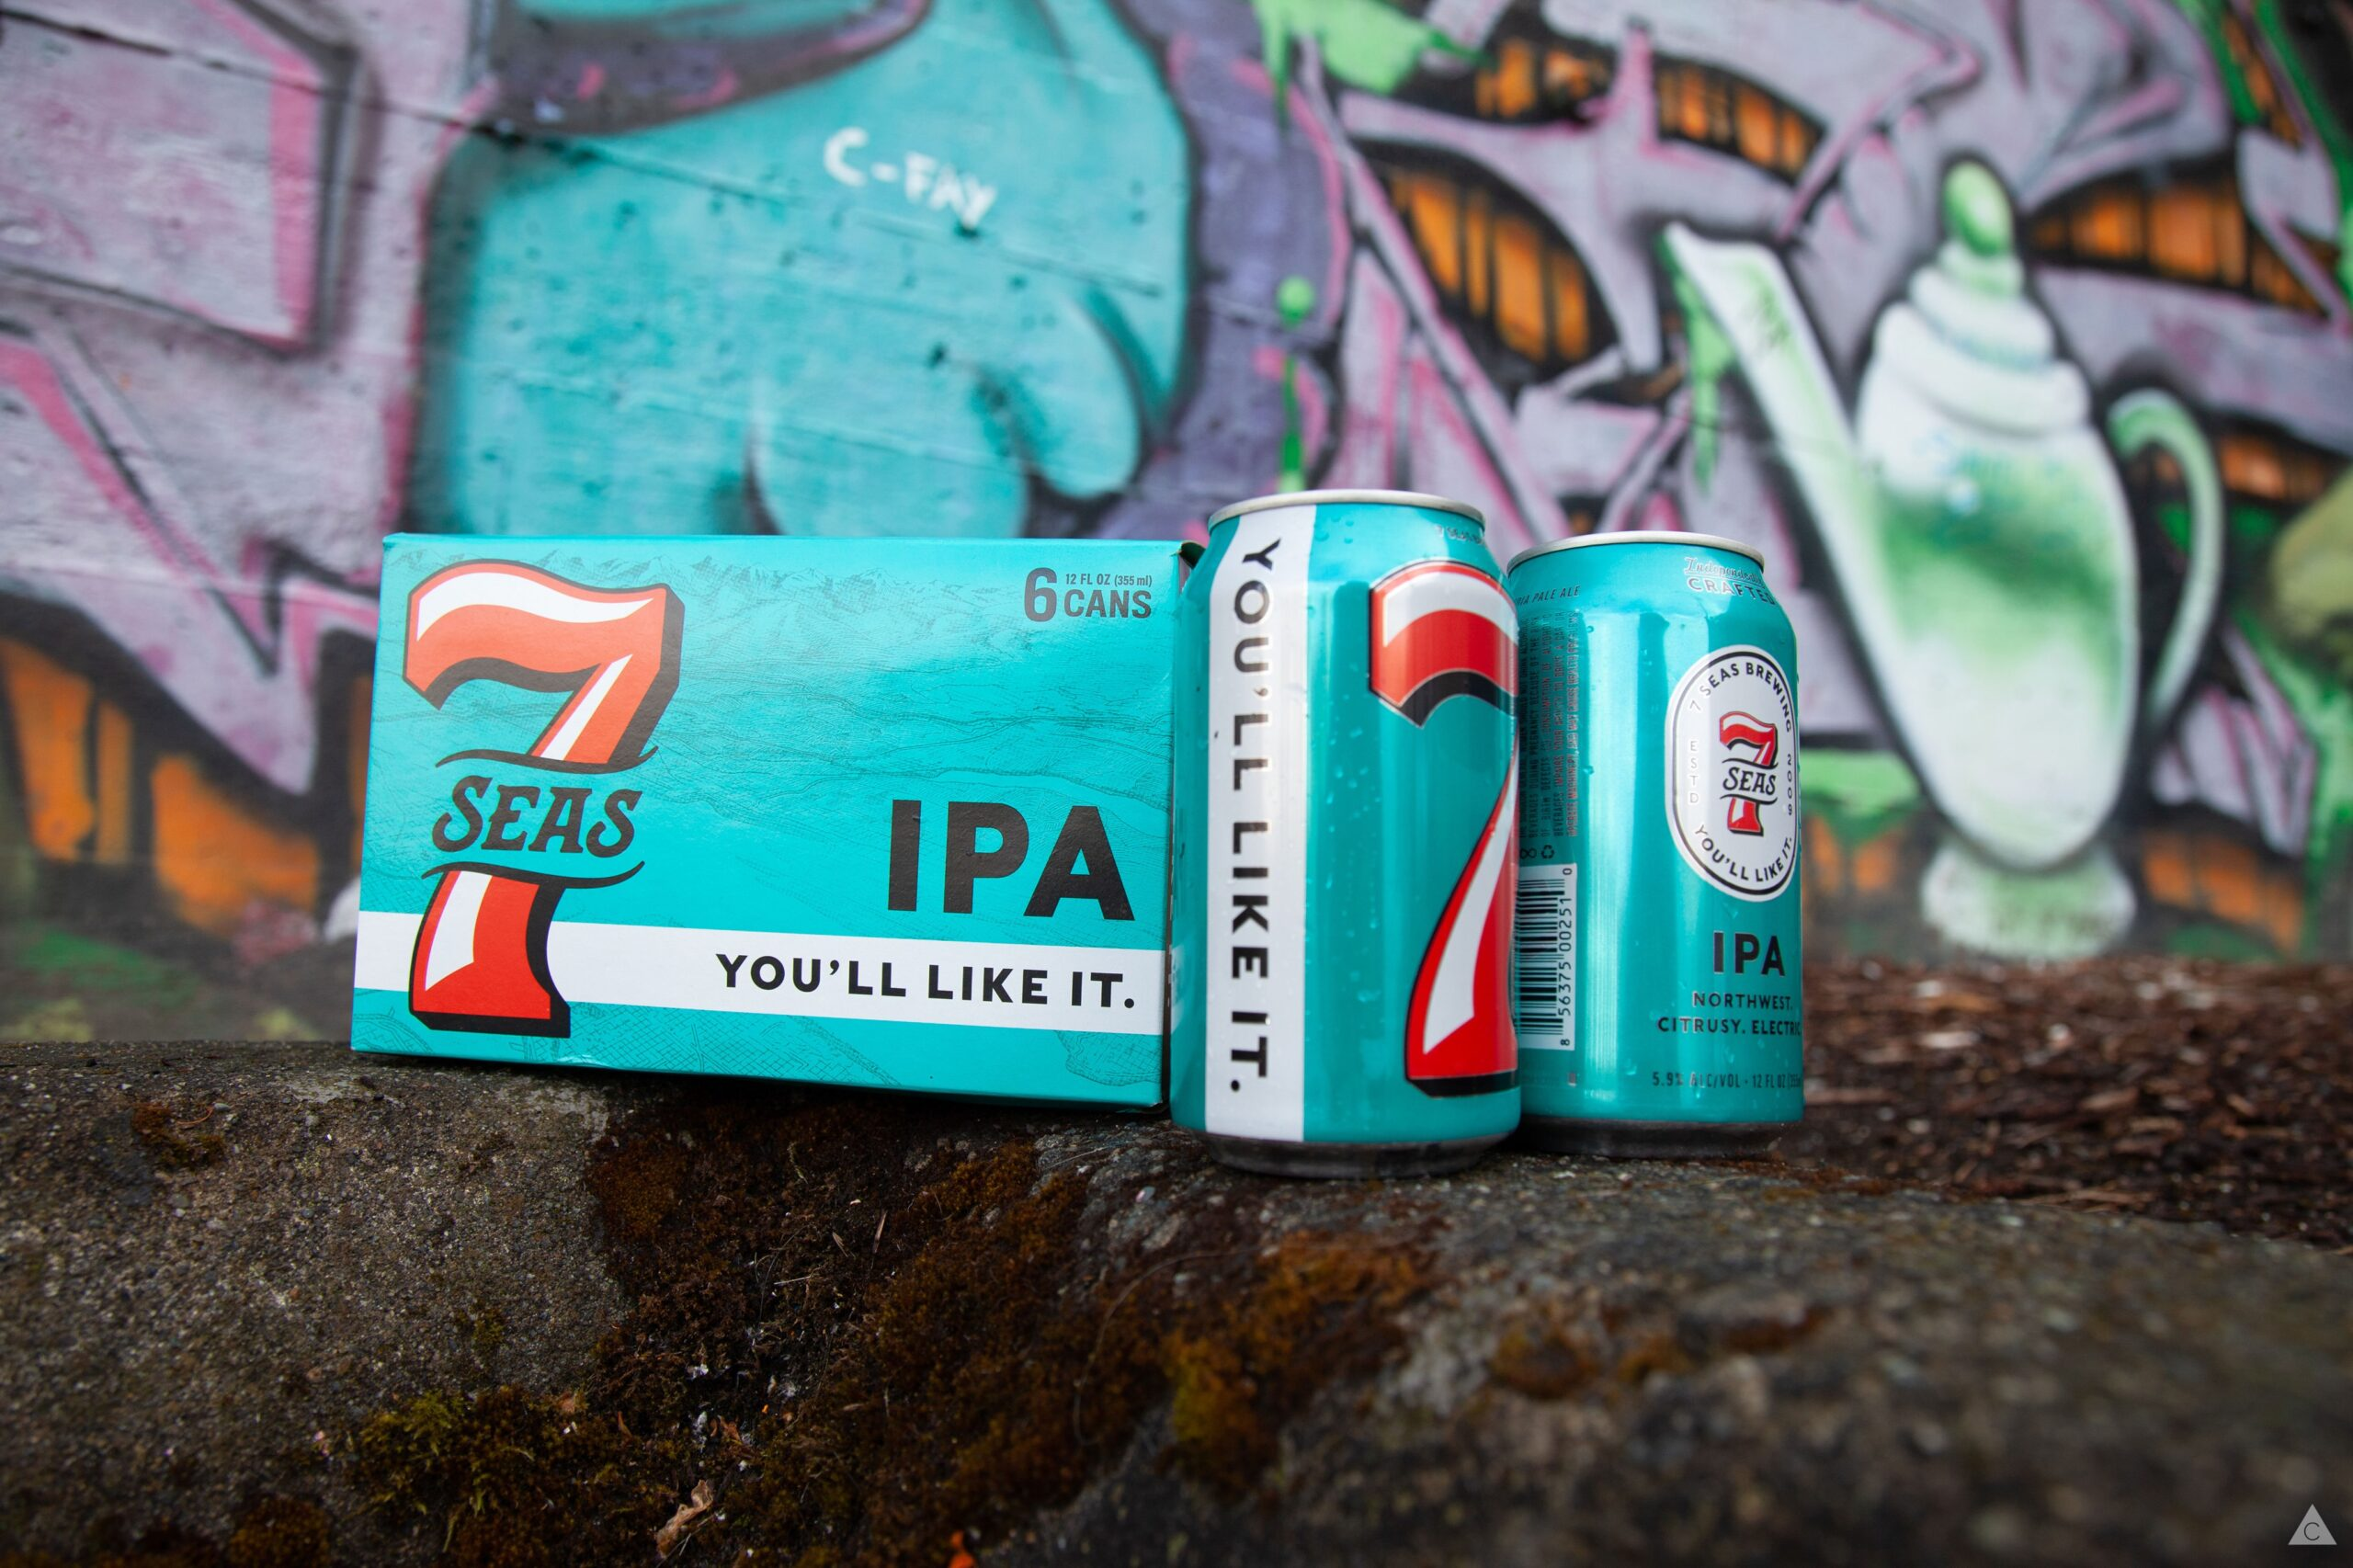 7 Seas Brewing Co Product Photography